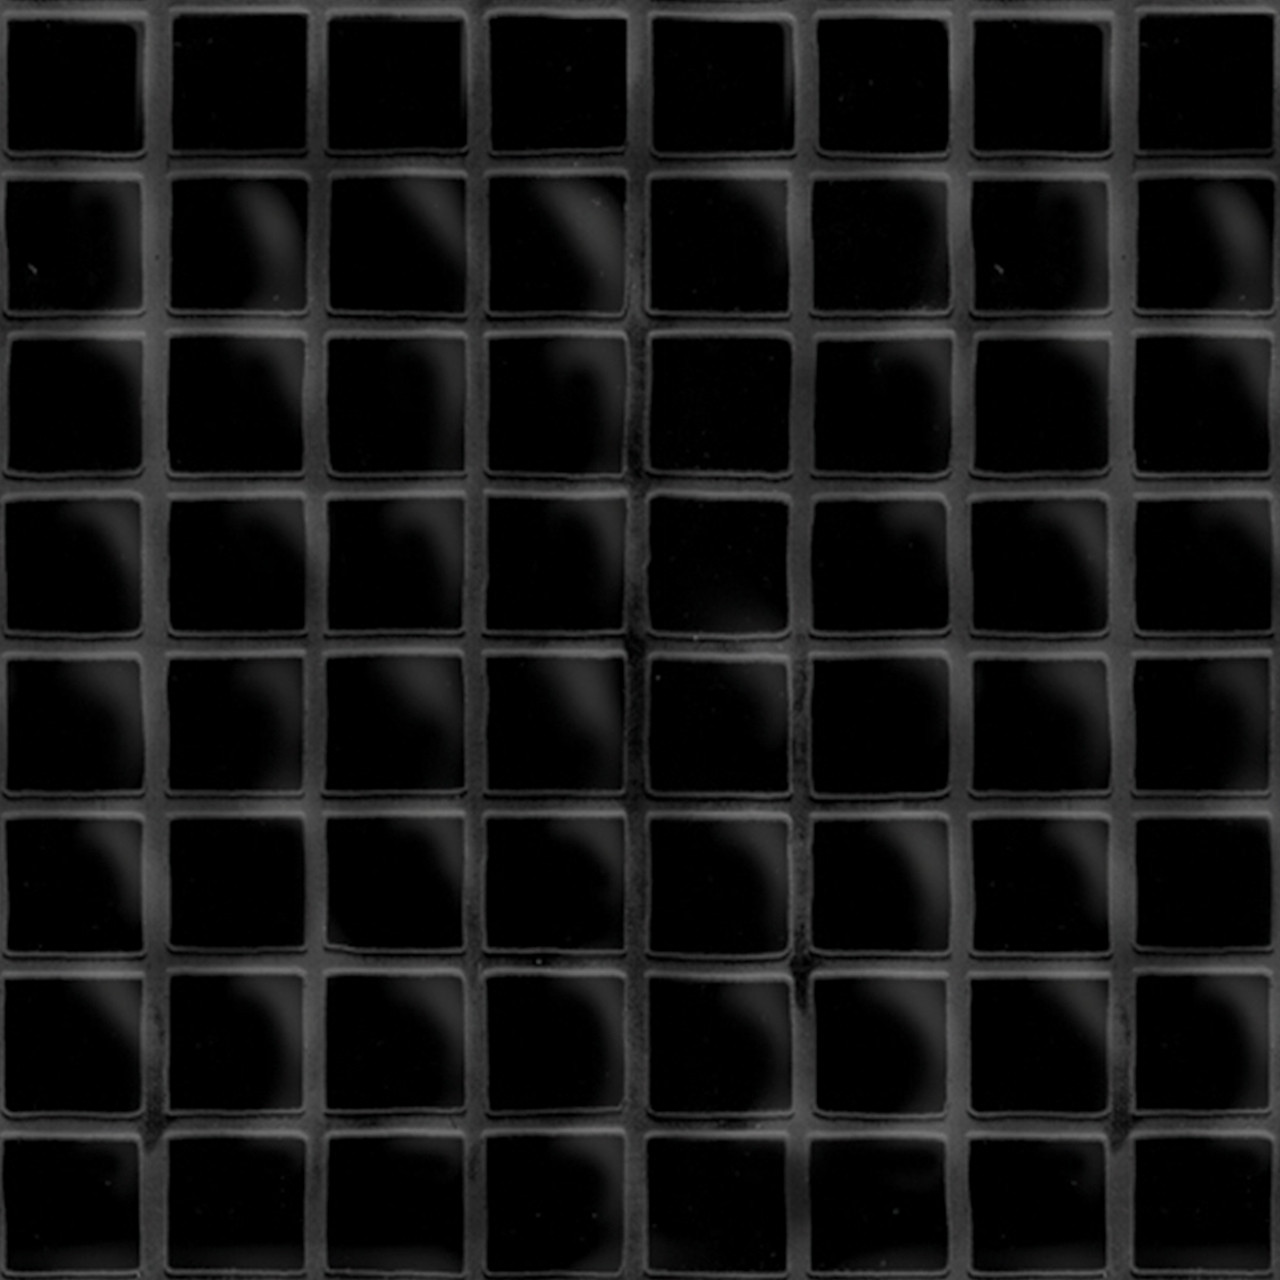 Multipanel Black Embossed Tile 2440mm x 1220mm Bathroom Wall Panel